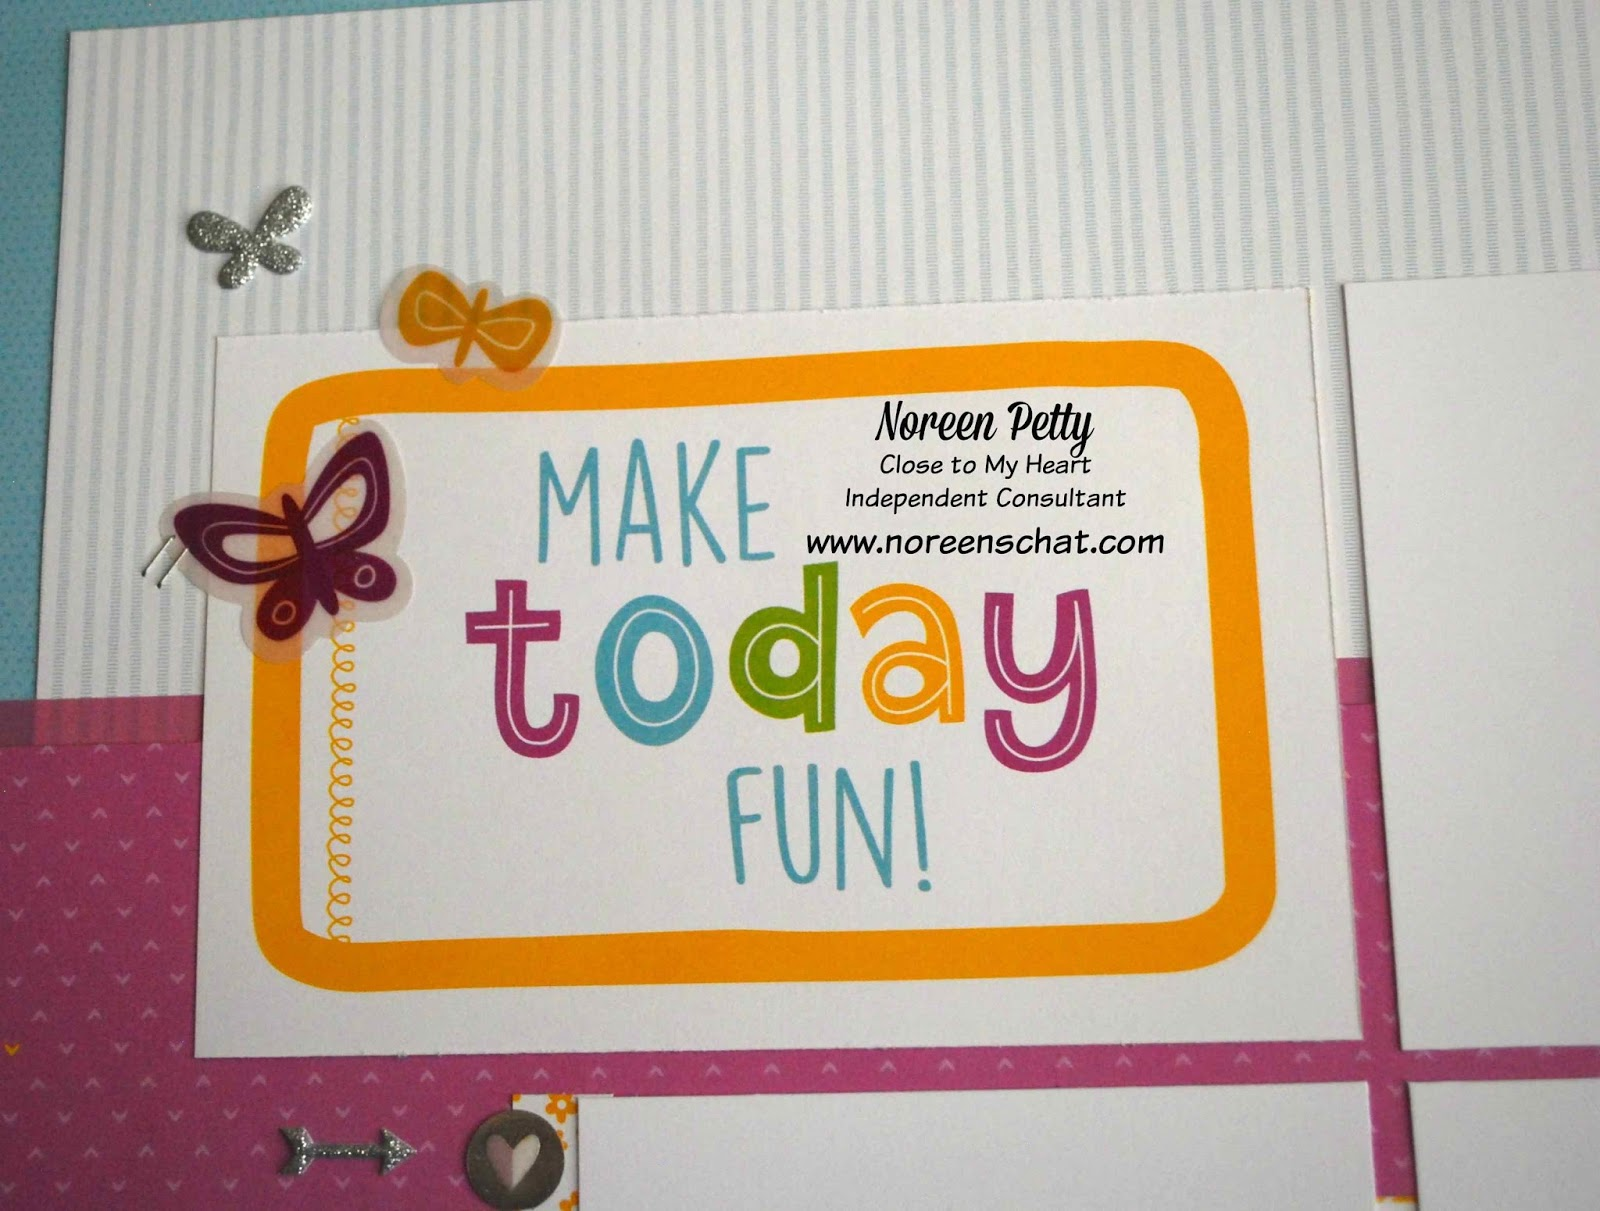 How to start scrapbook business - Wouldn T You Love To Get Paid To Scrapbook Stamp And Create You Truly Can Build A Business With Close To My Heart And What Business Can You Start For